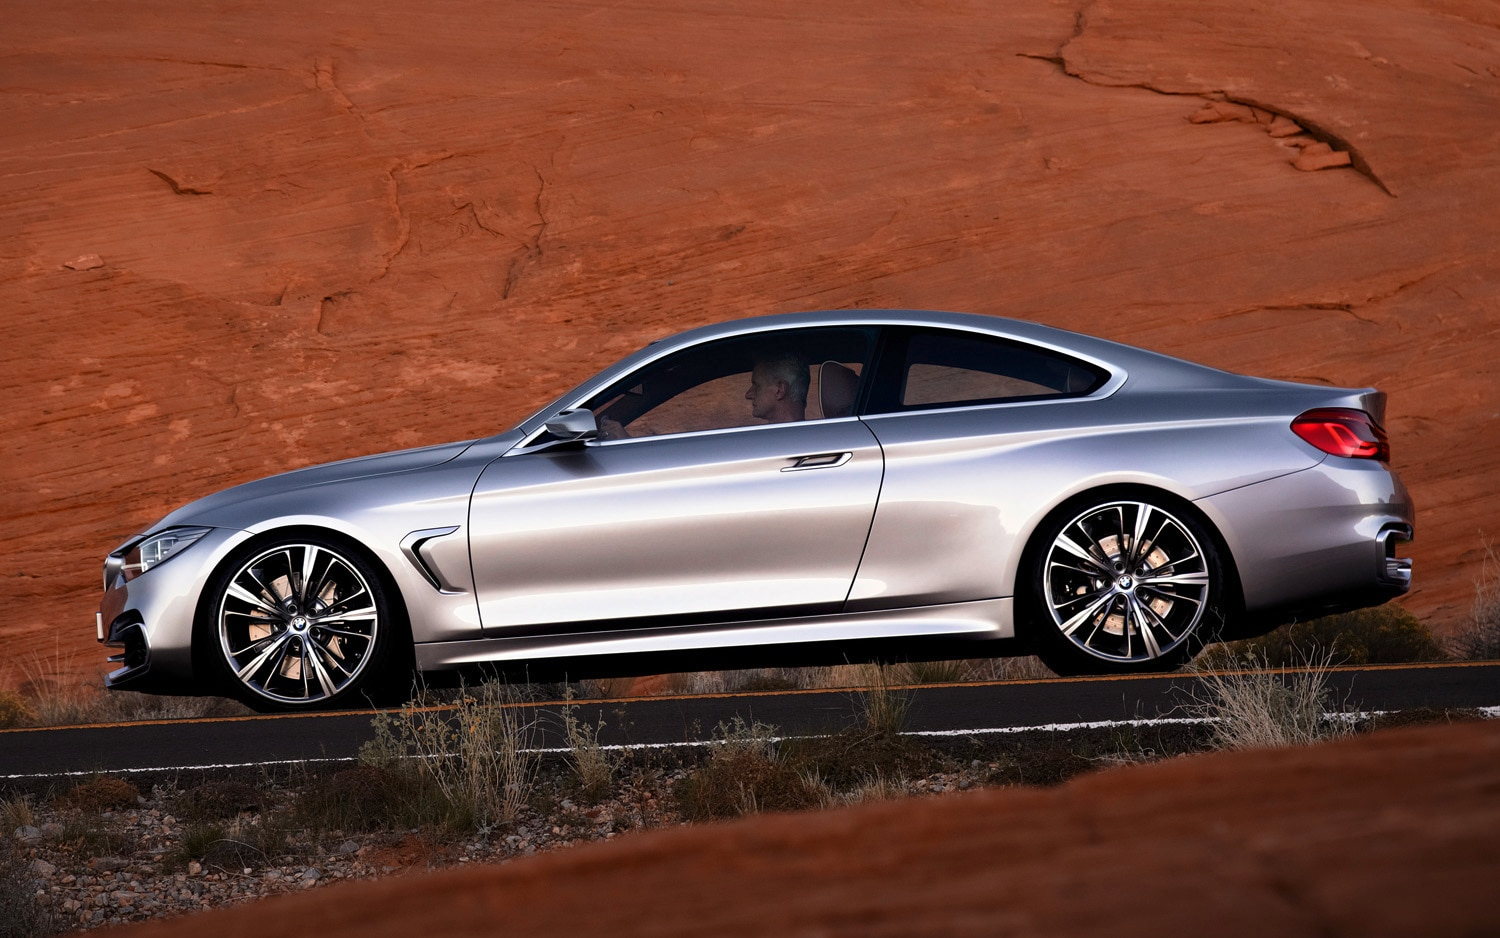 First Look: BMW 4 Series Coupe Concept - Automobile Magazine